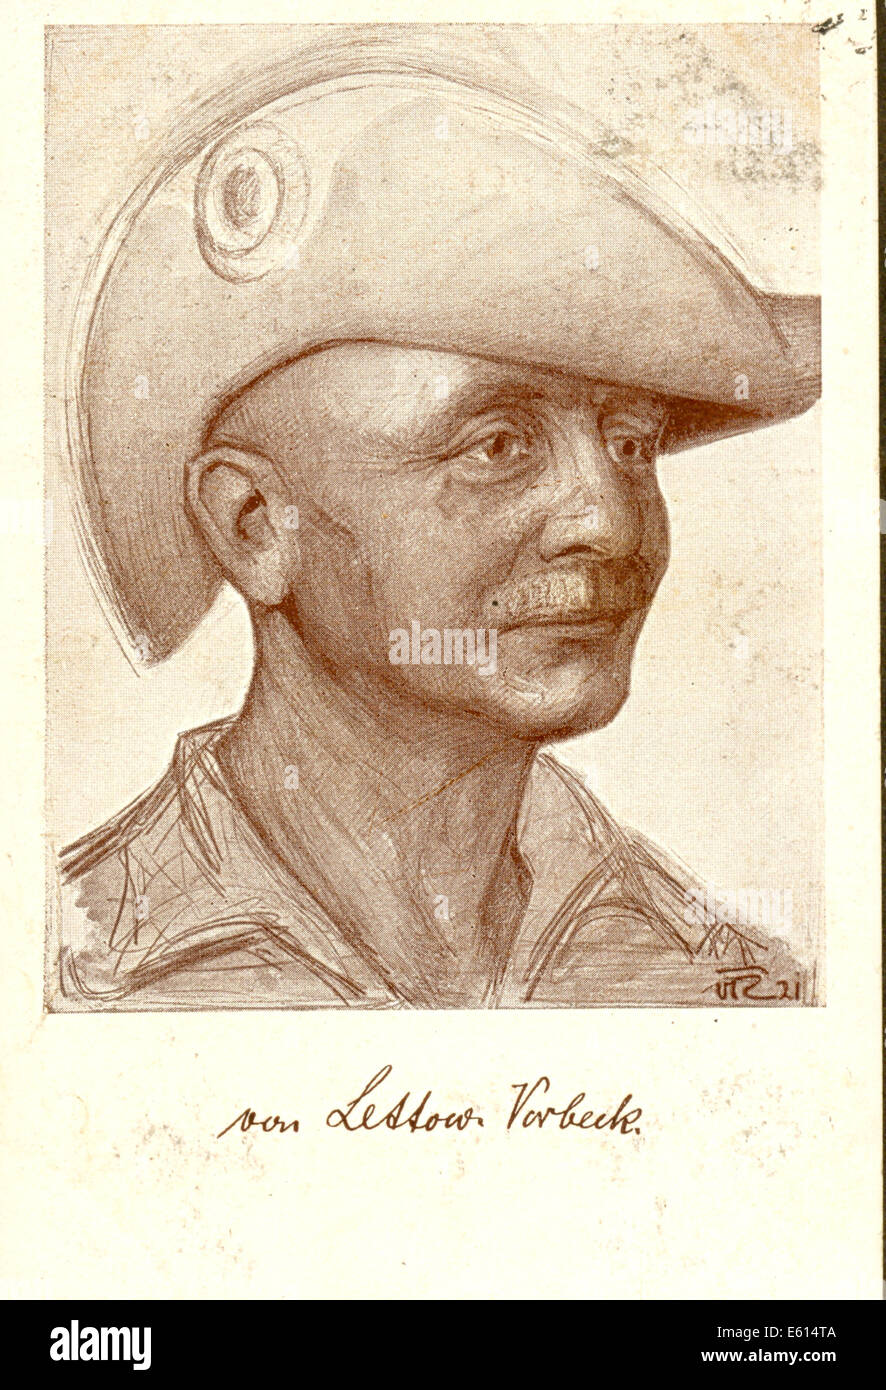 Postcard of General Paul von Lettow-Vorbeck (1870-1964) - Stock Image